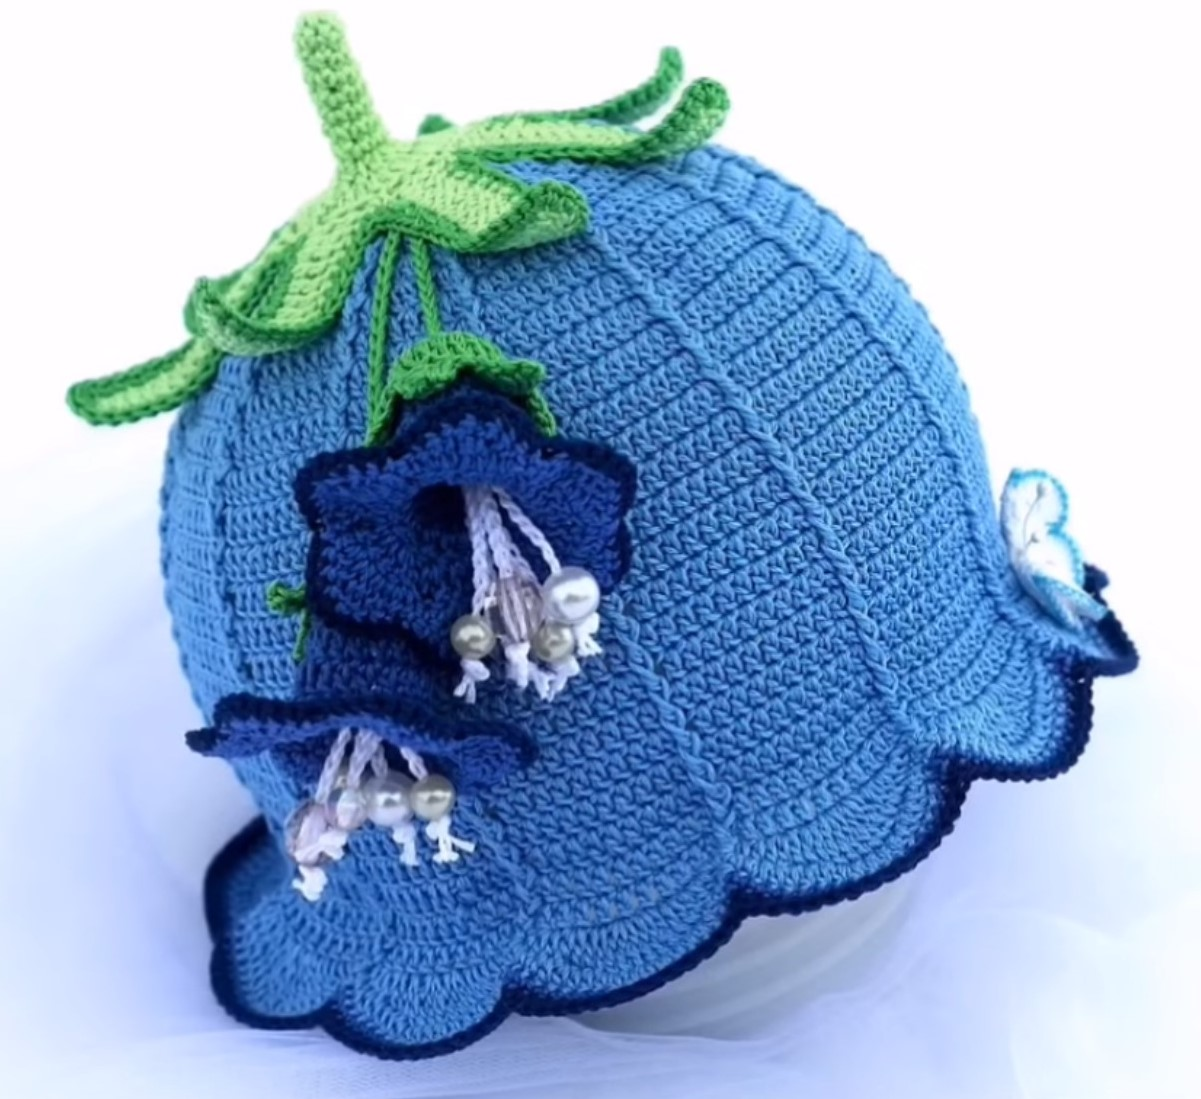 3b3d75272 Crochet Baby Hat With Bell - Video Tutorial - Pretty Ideas